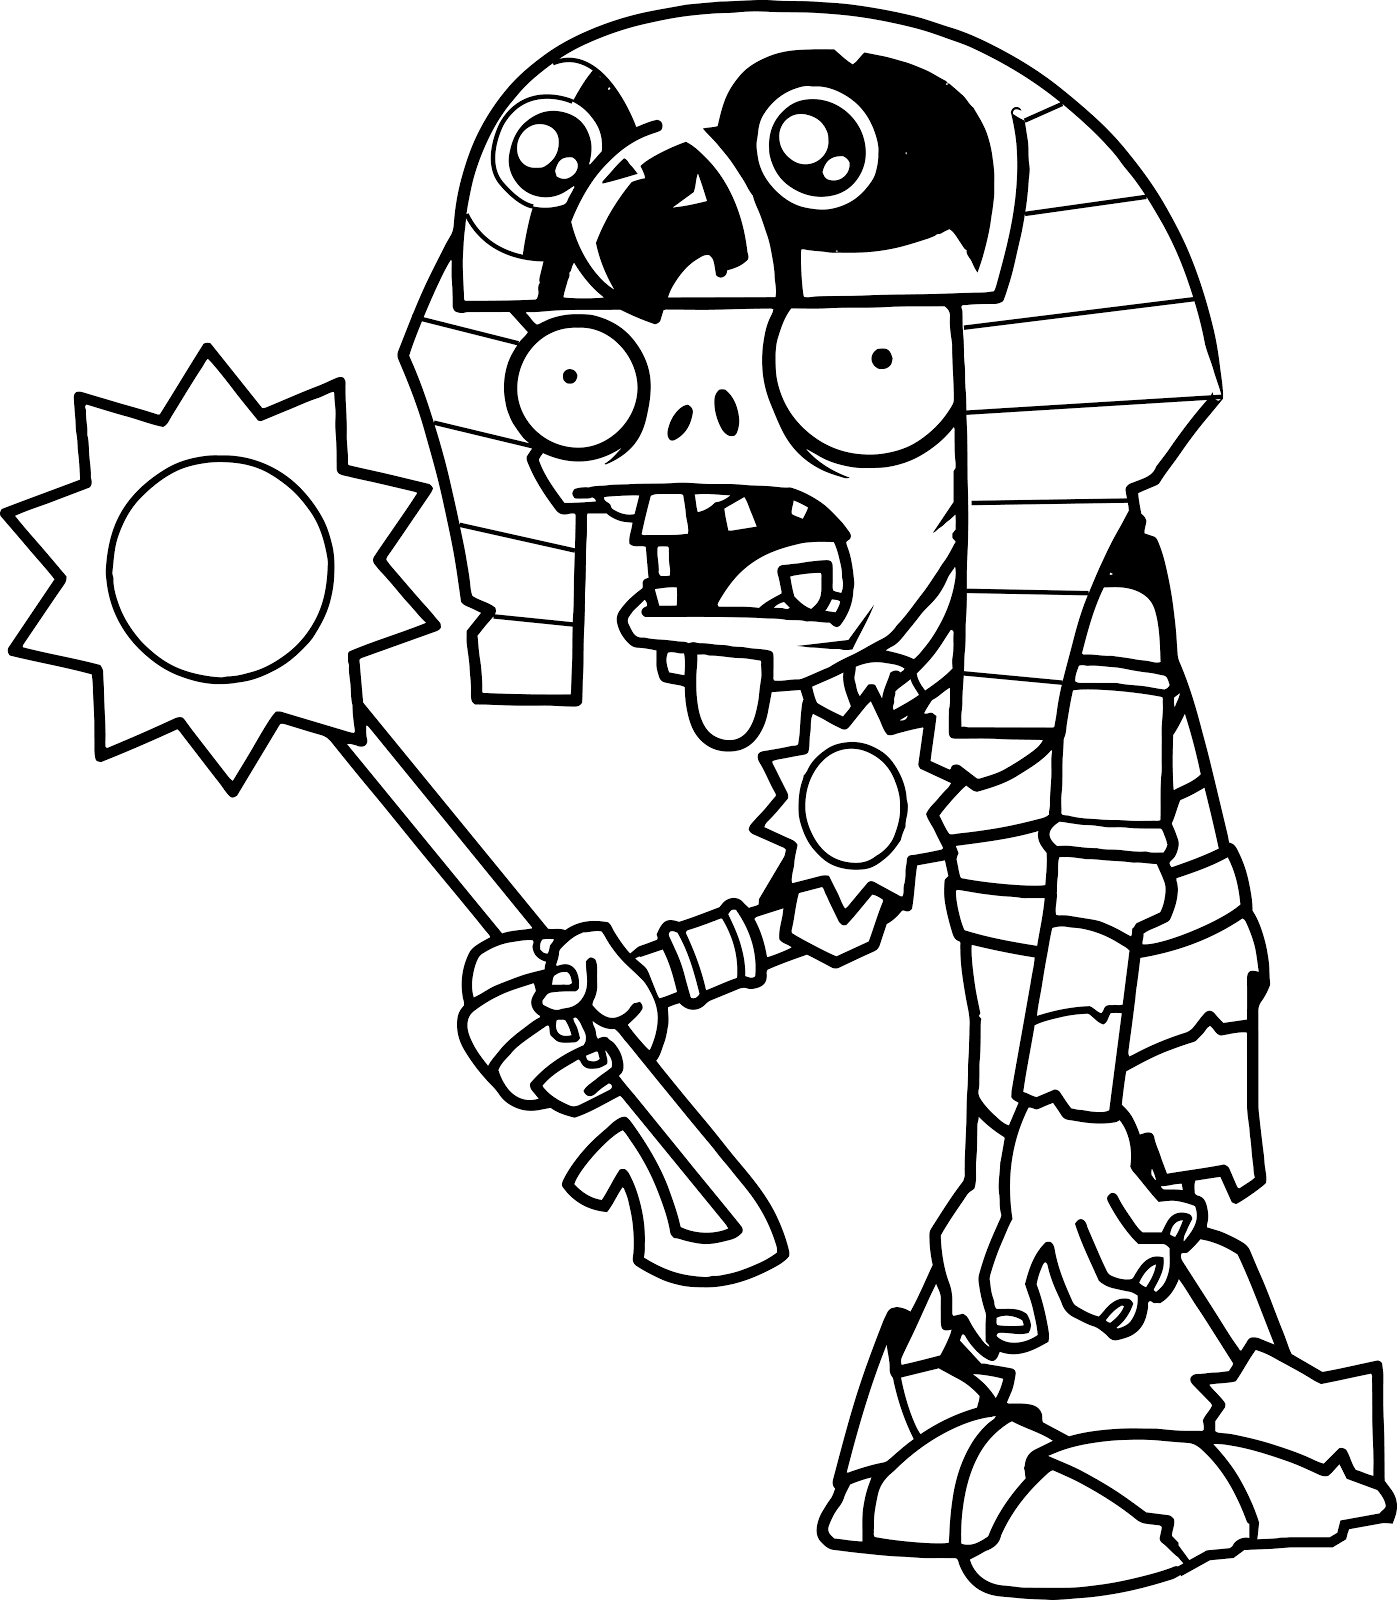 plants vs zombies 2 free coloring pages plants vs zombies 2 coloring pages at getdrawings free vs plants 2 free coloring zombies pages